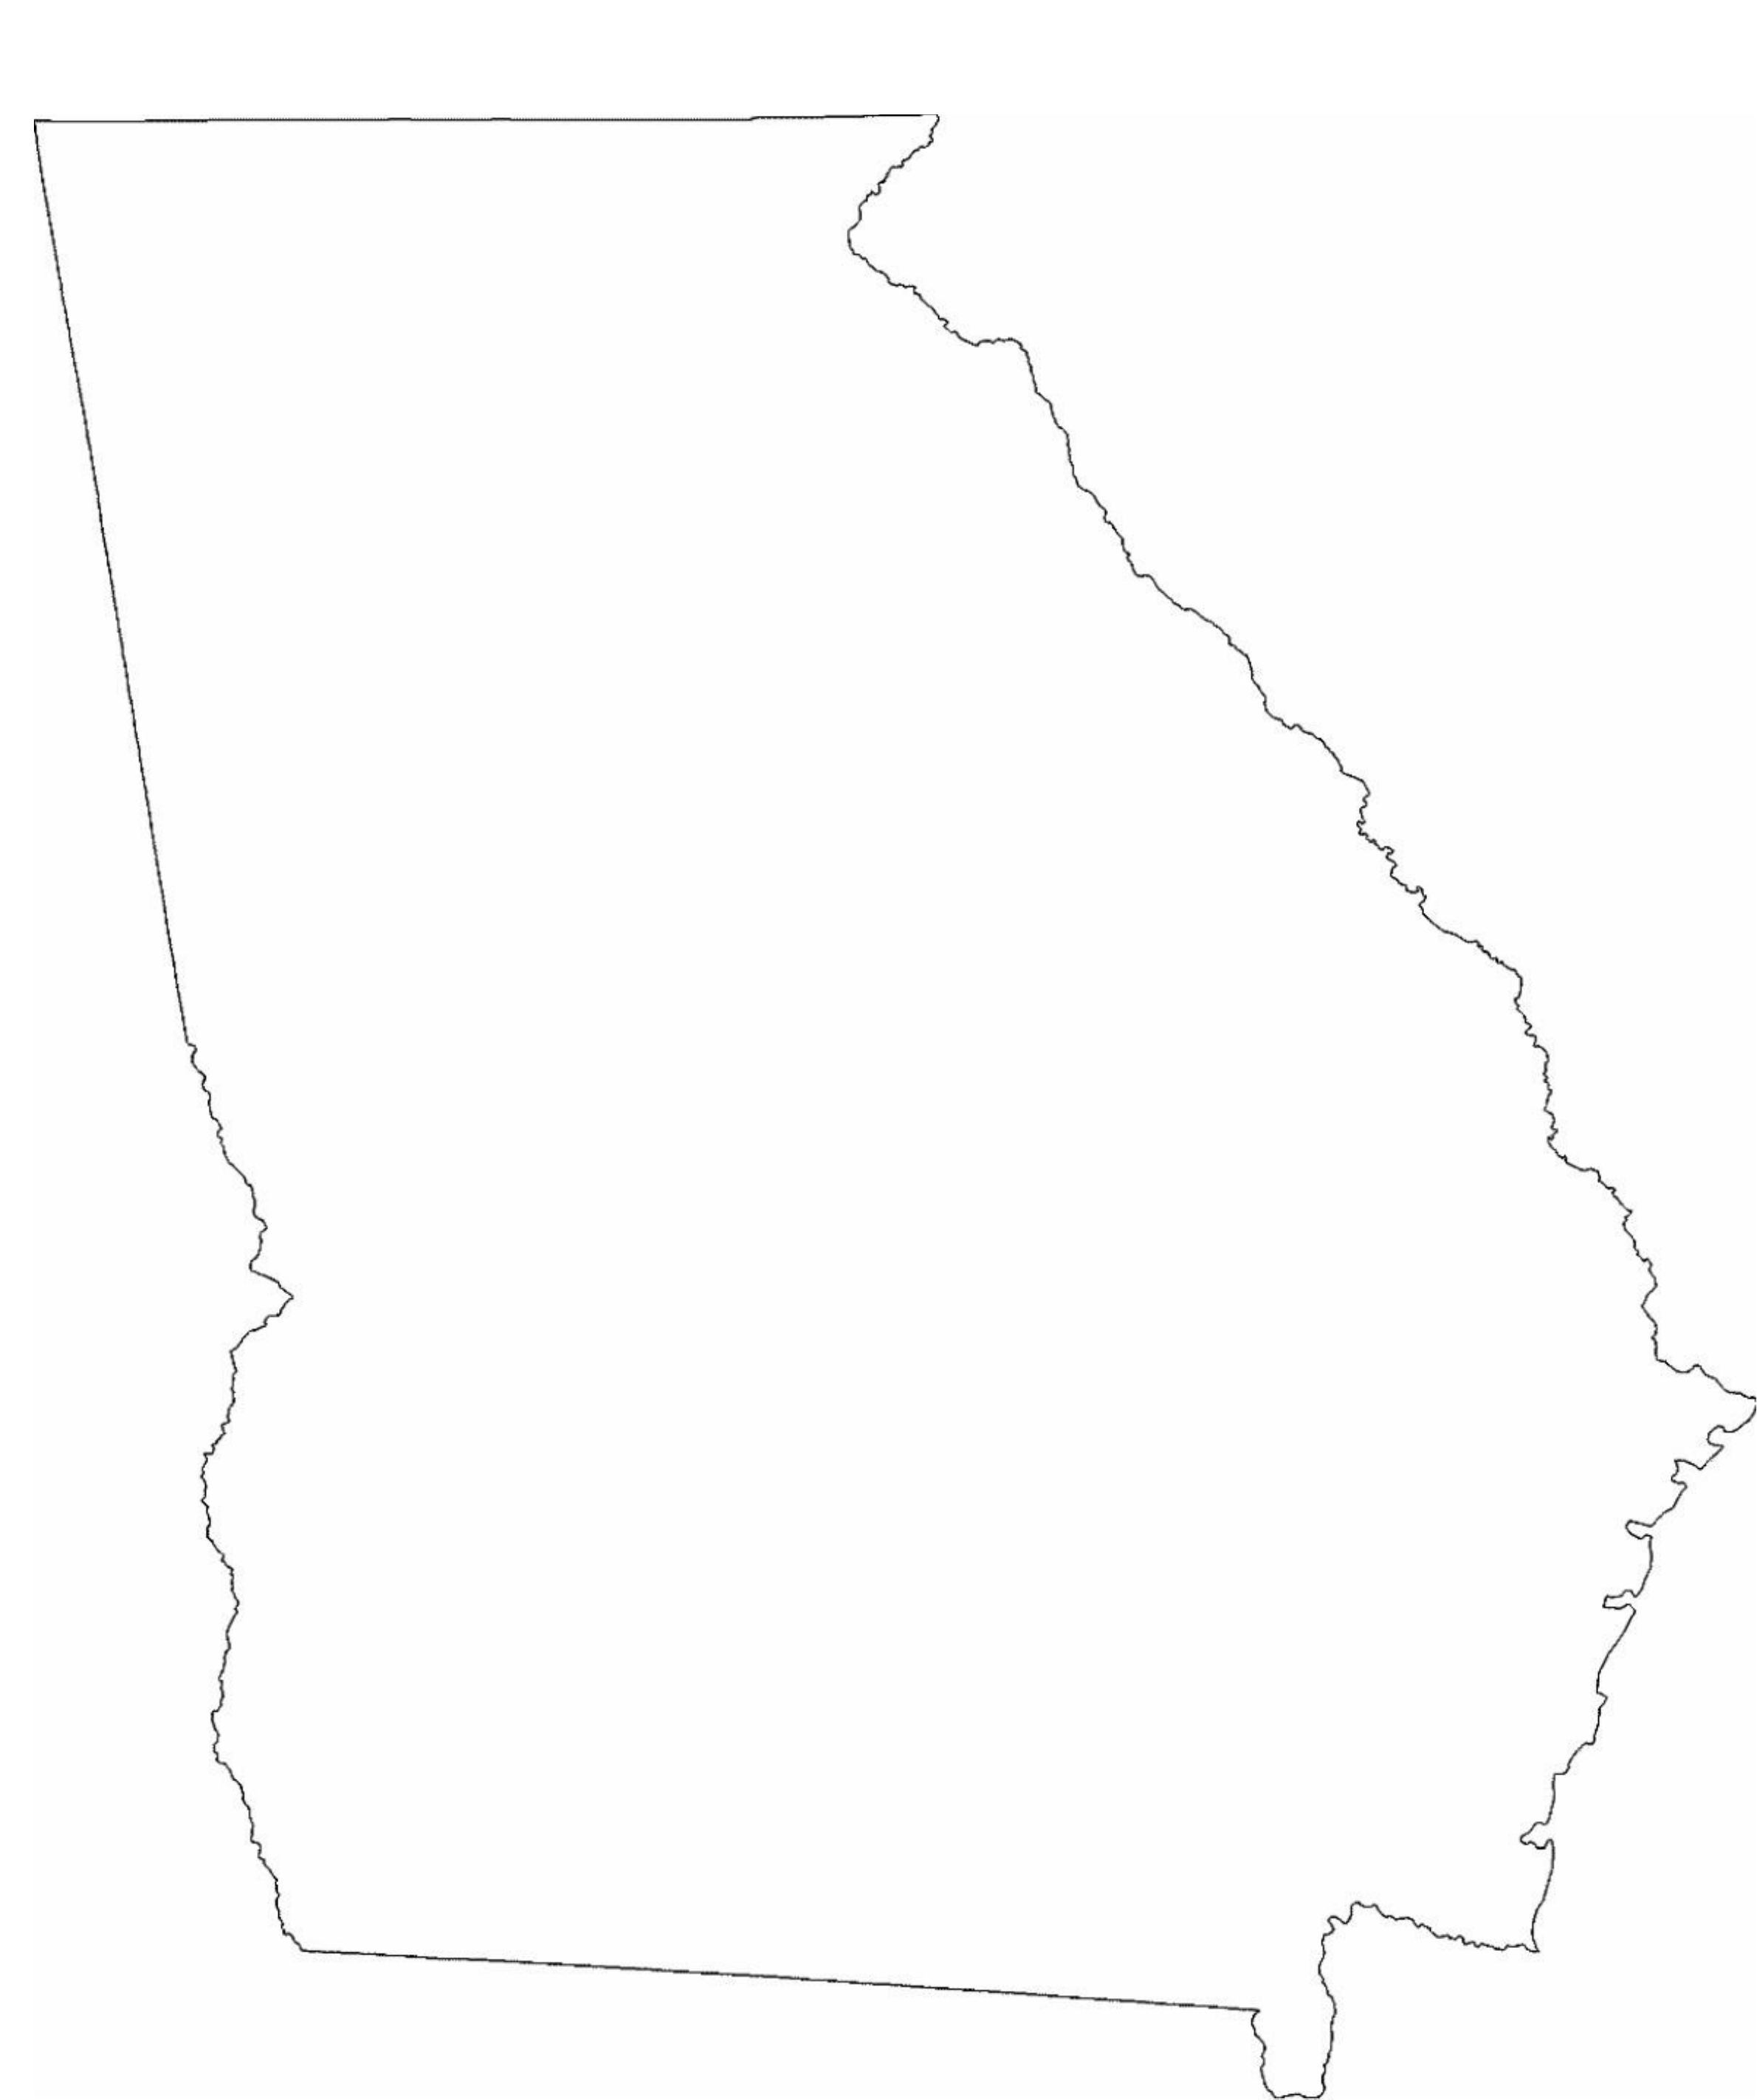 Georgia State Outline Map Free Download